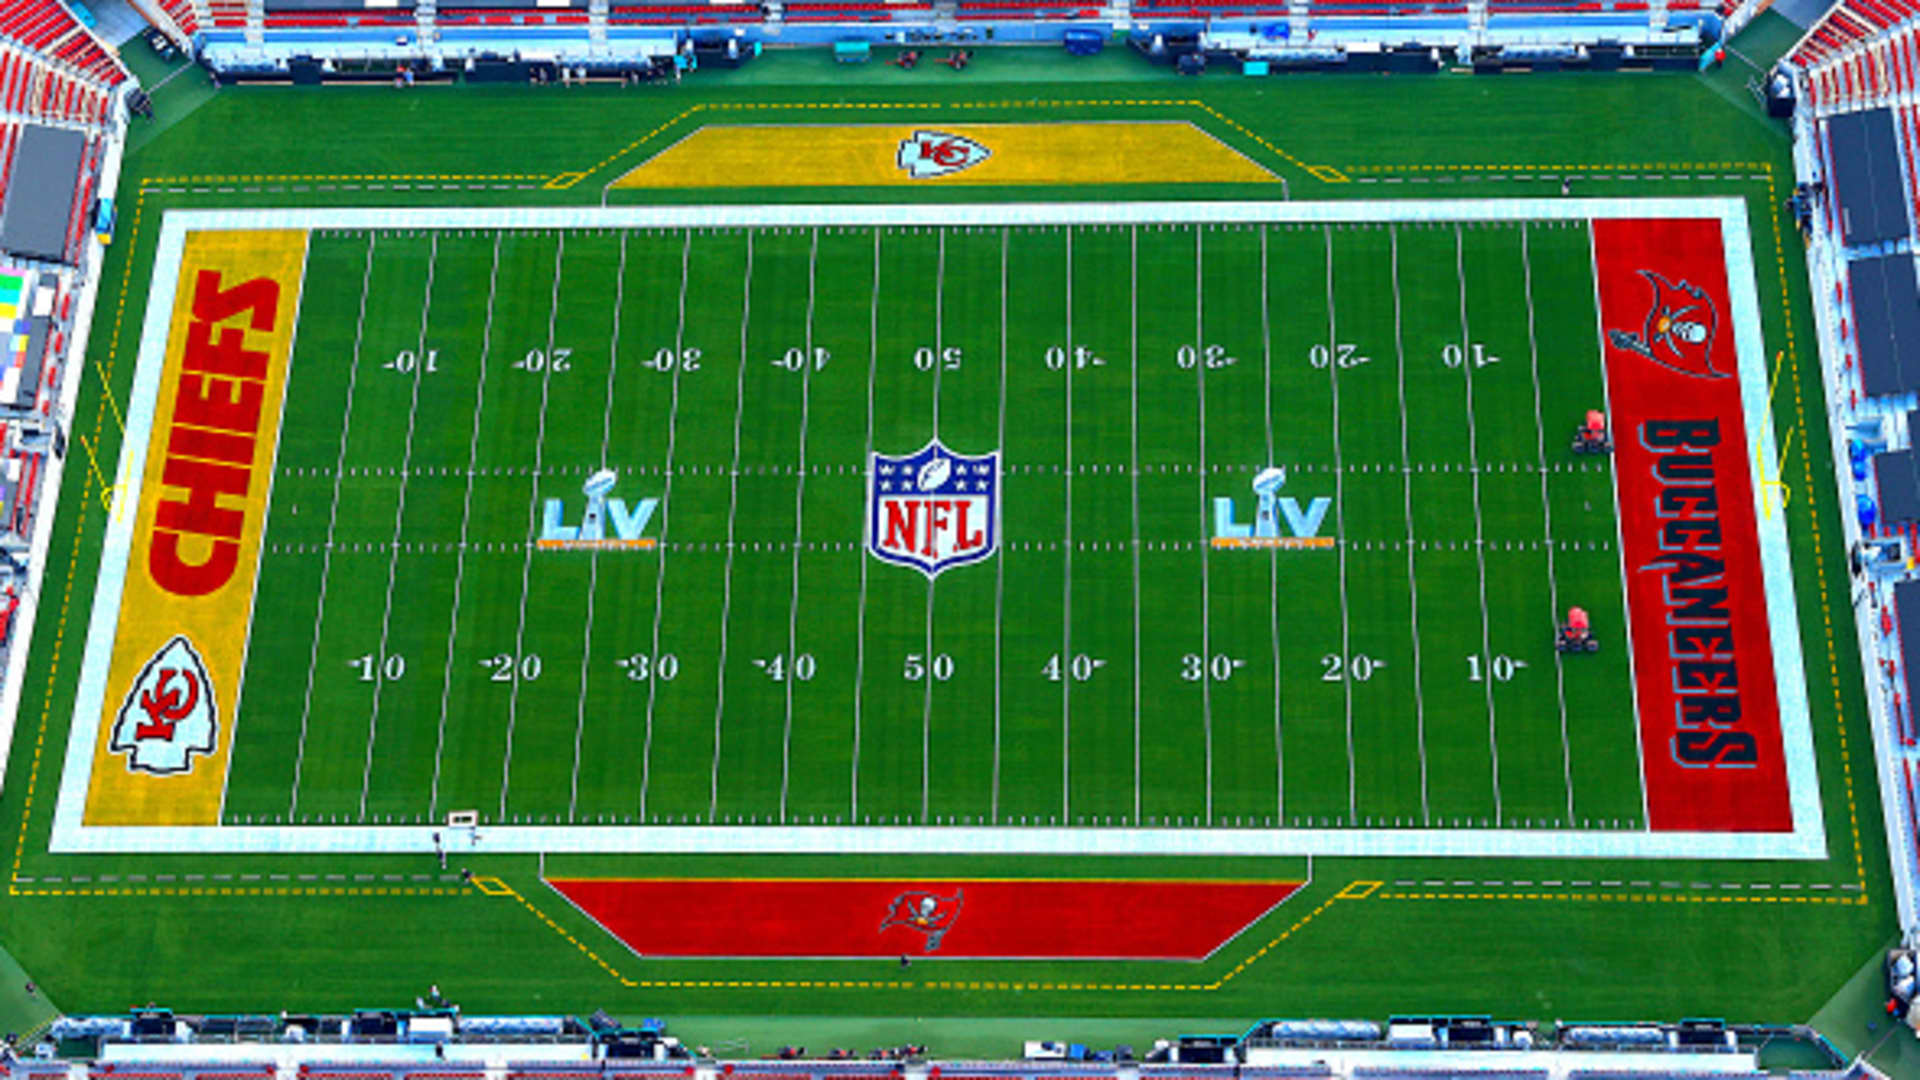 An aerial view of Raymond James Stadium ahead of Super Bowl LV on January 31, 2021 in Tampa, Florida.